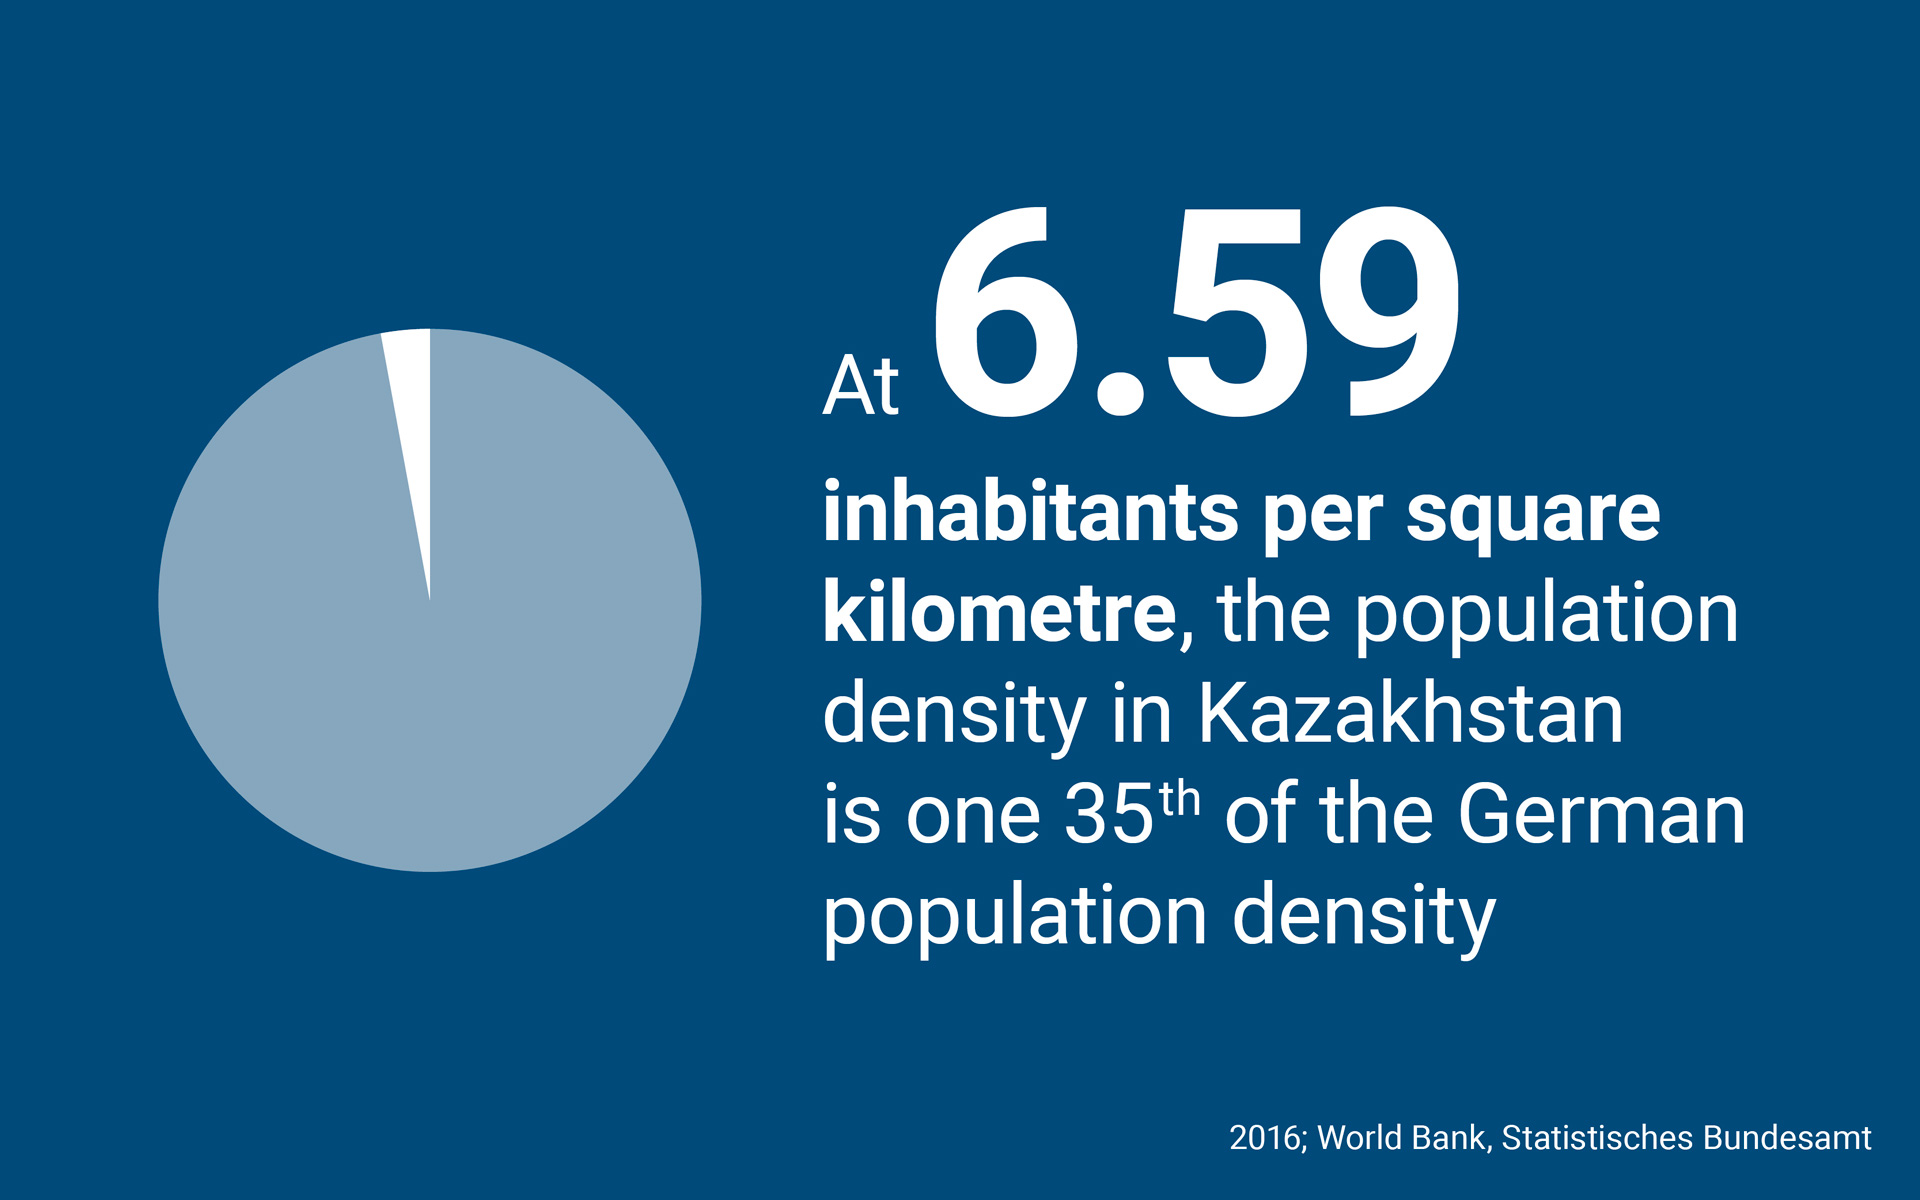 At 6.59 inhabitants per square kilometre, the population density in Kazakhstan is one 35th of the German population density.